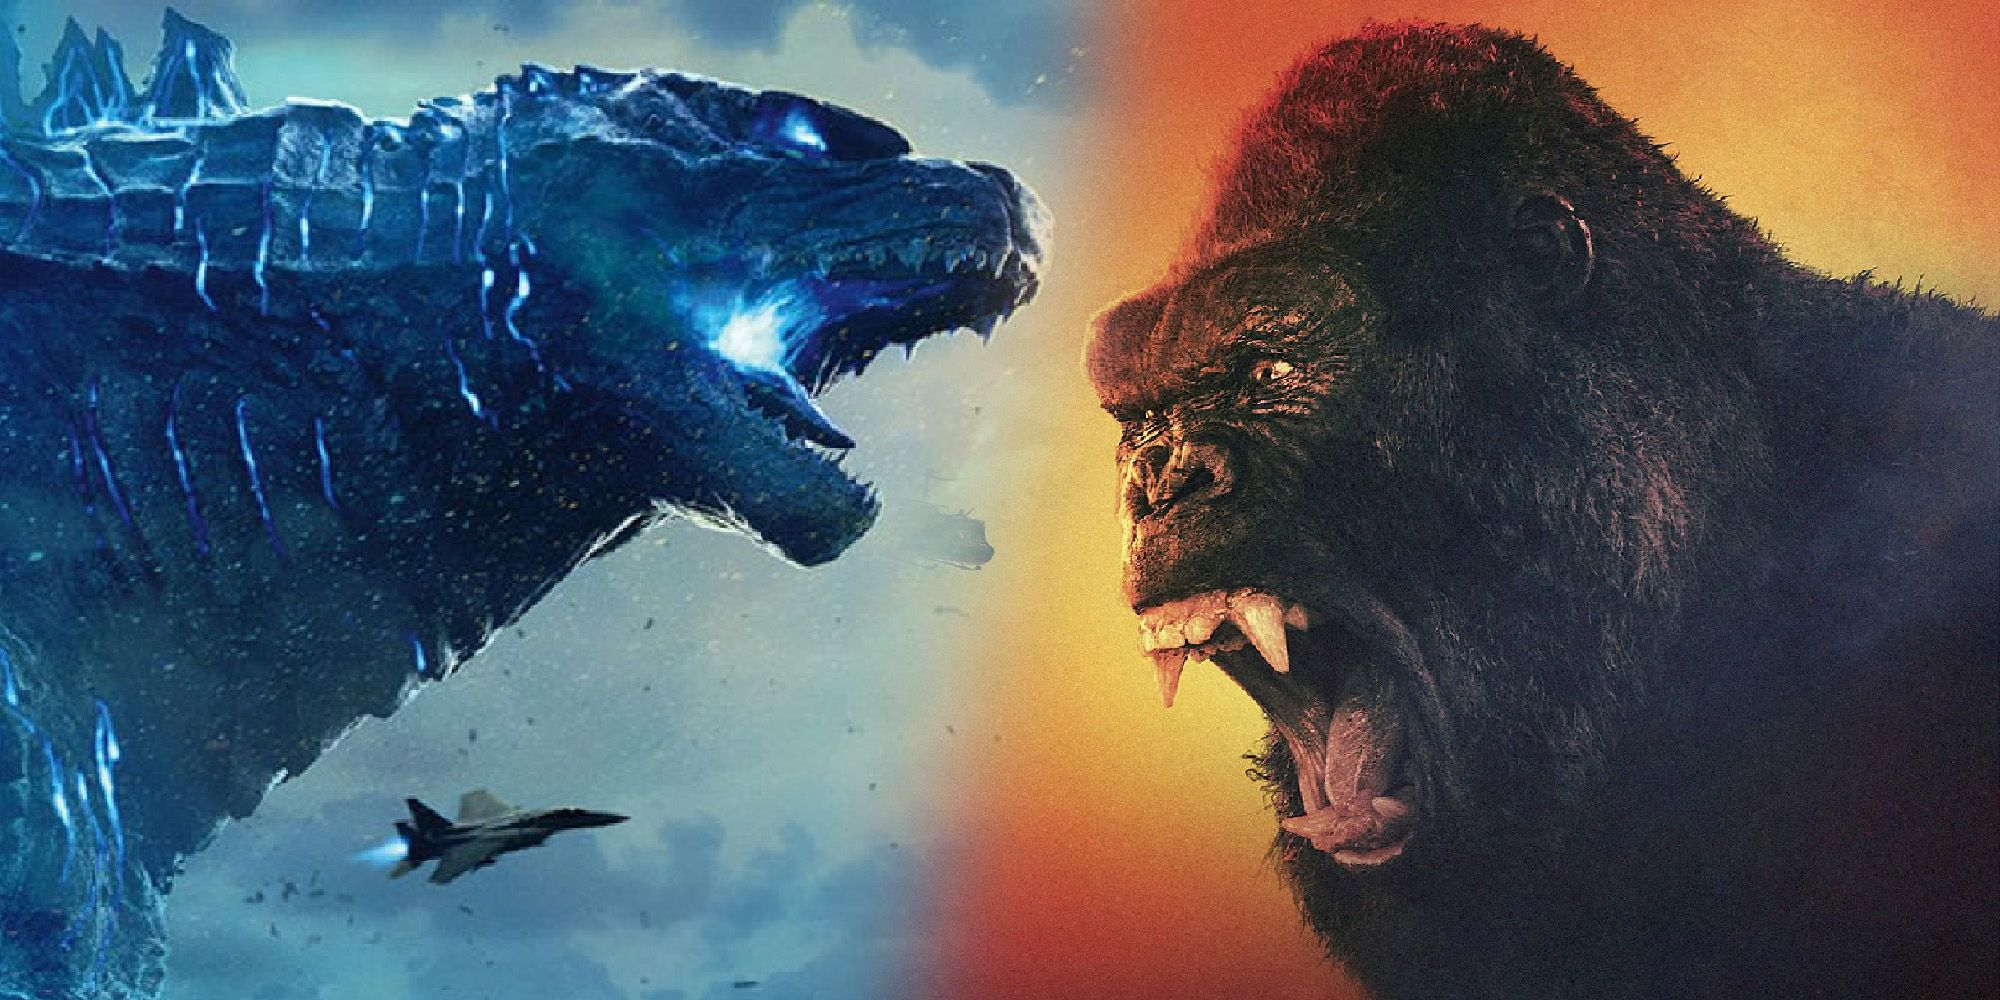 Godzilla vs. Kong First Footage Shows Kong In Chains